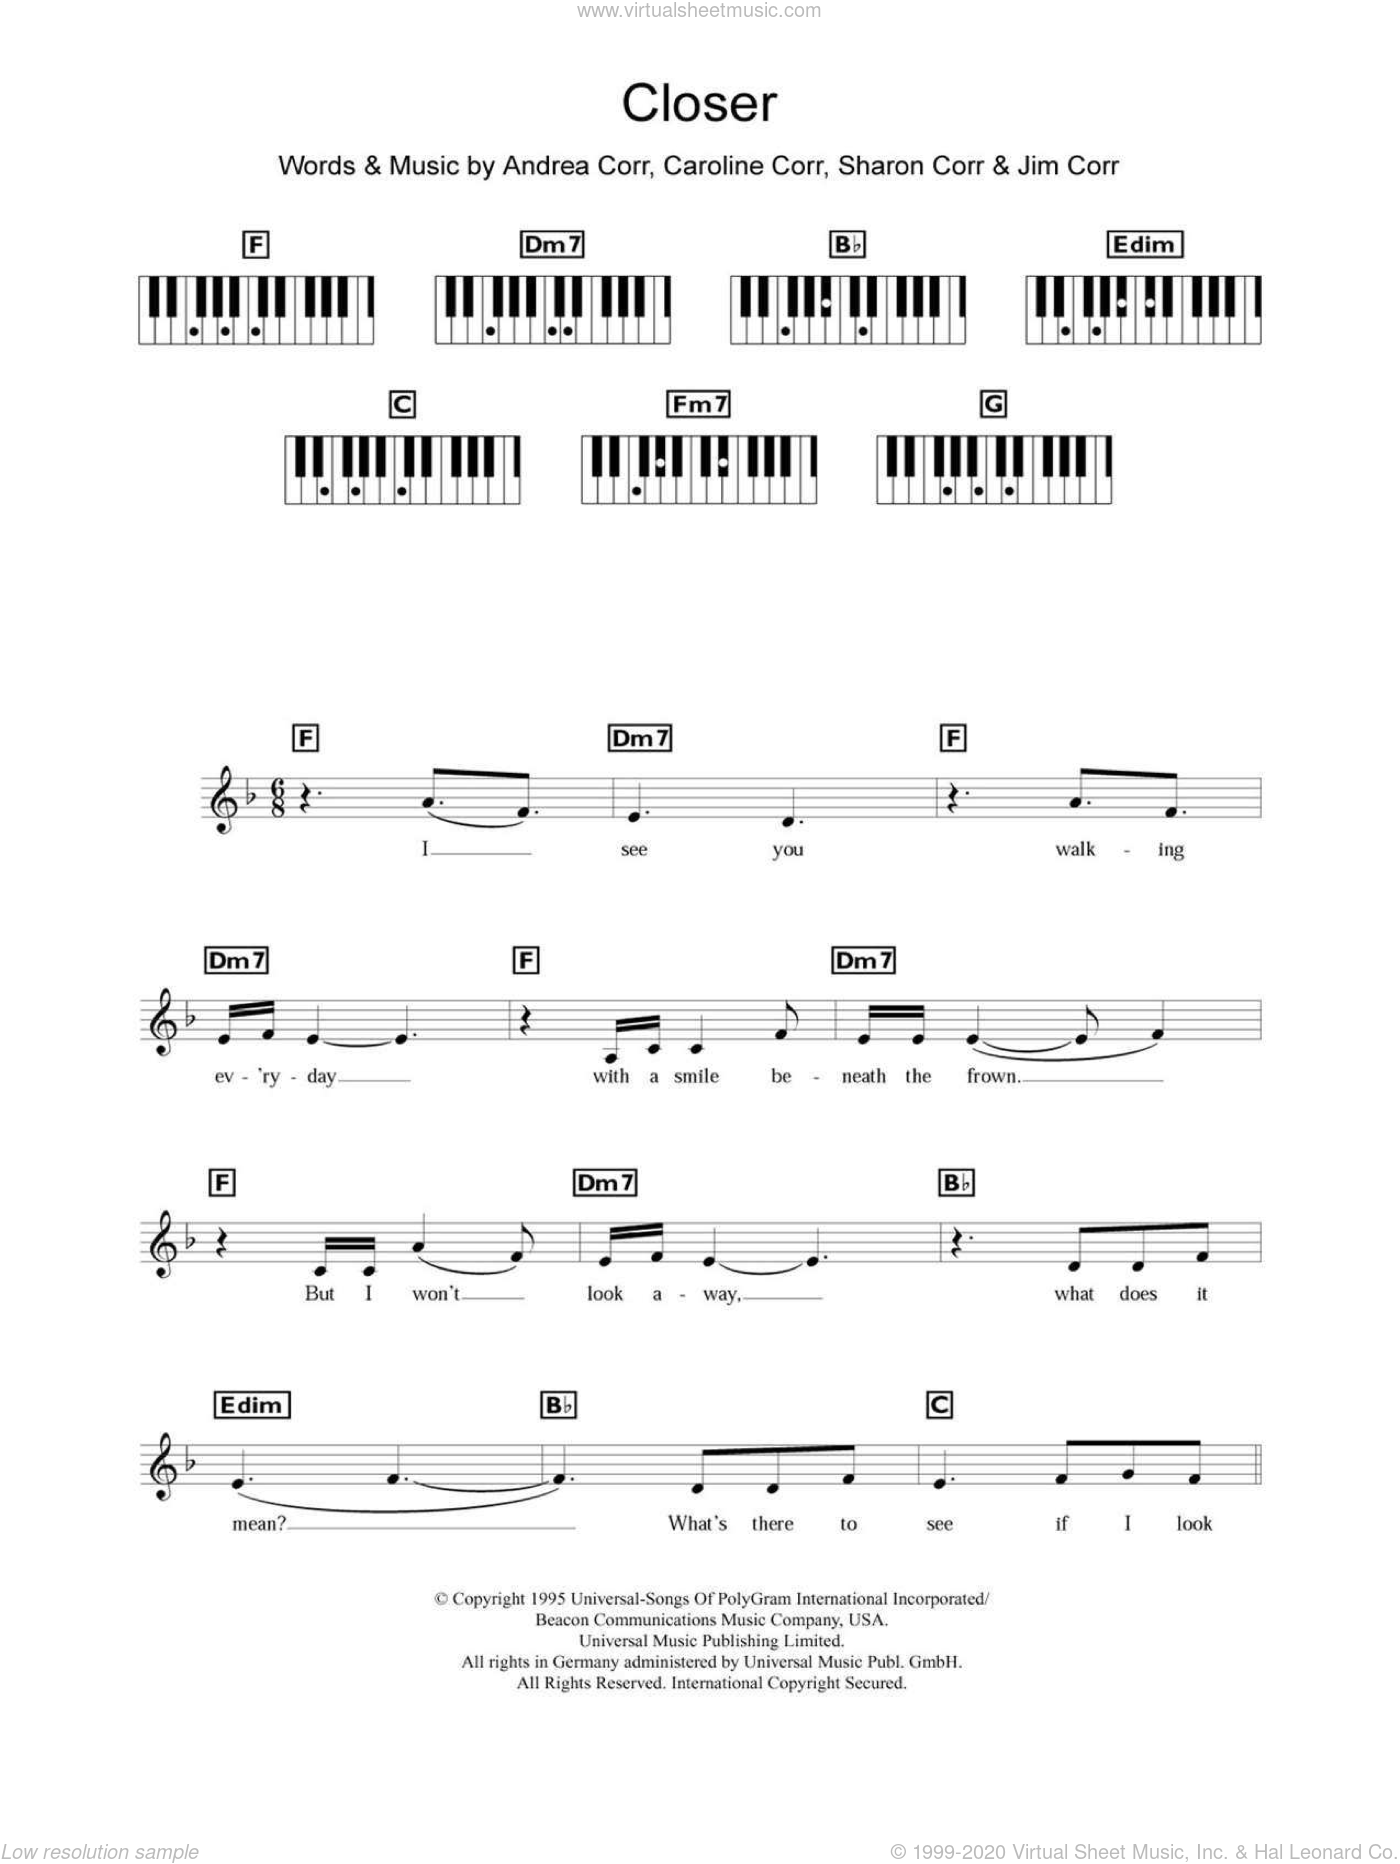 Corrs - Closer sheet music for piano solo (chords, lyrics, melody)